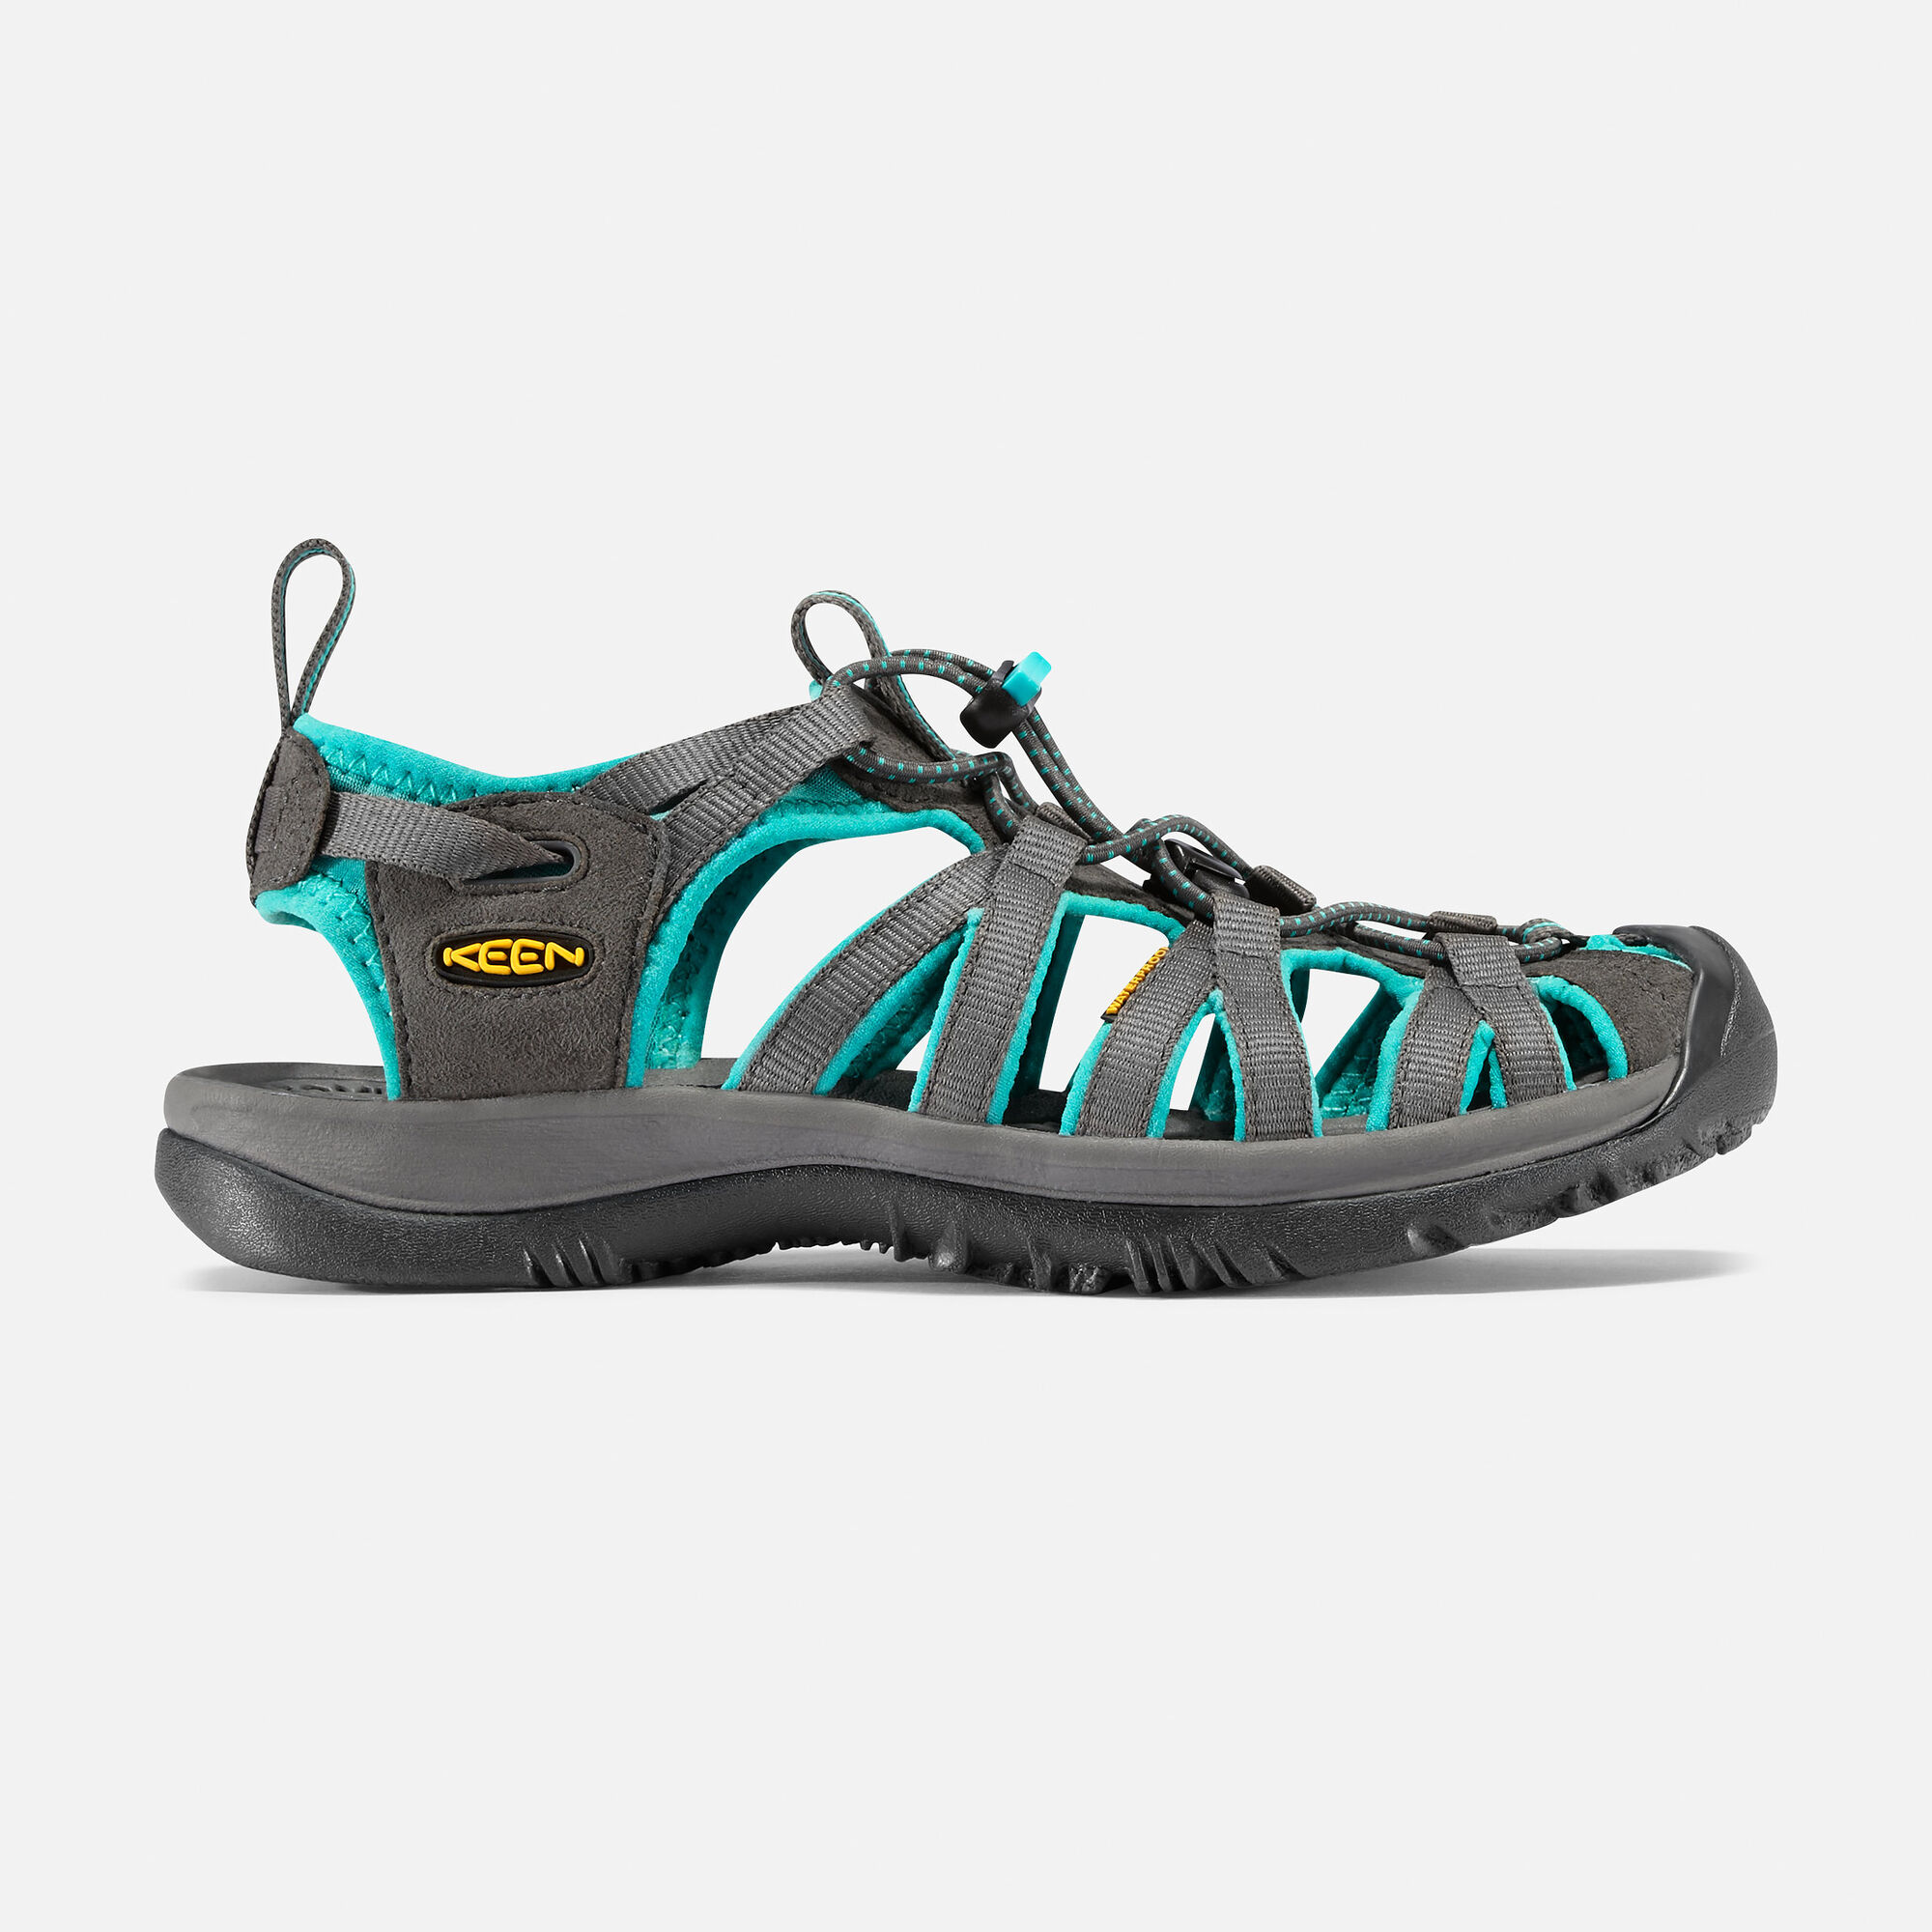 Women S Whisper Hiking Sandals Amp Water Shoes Keen Footwear